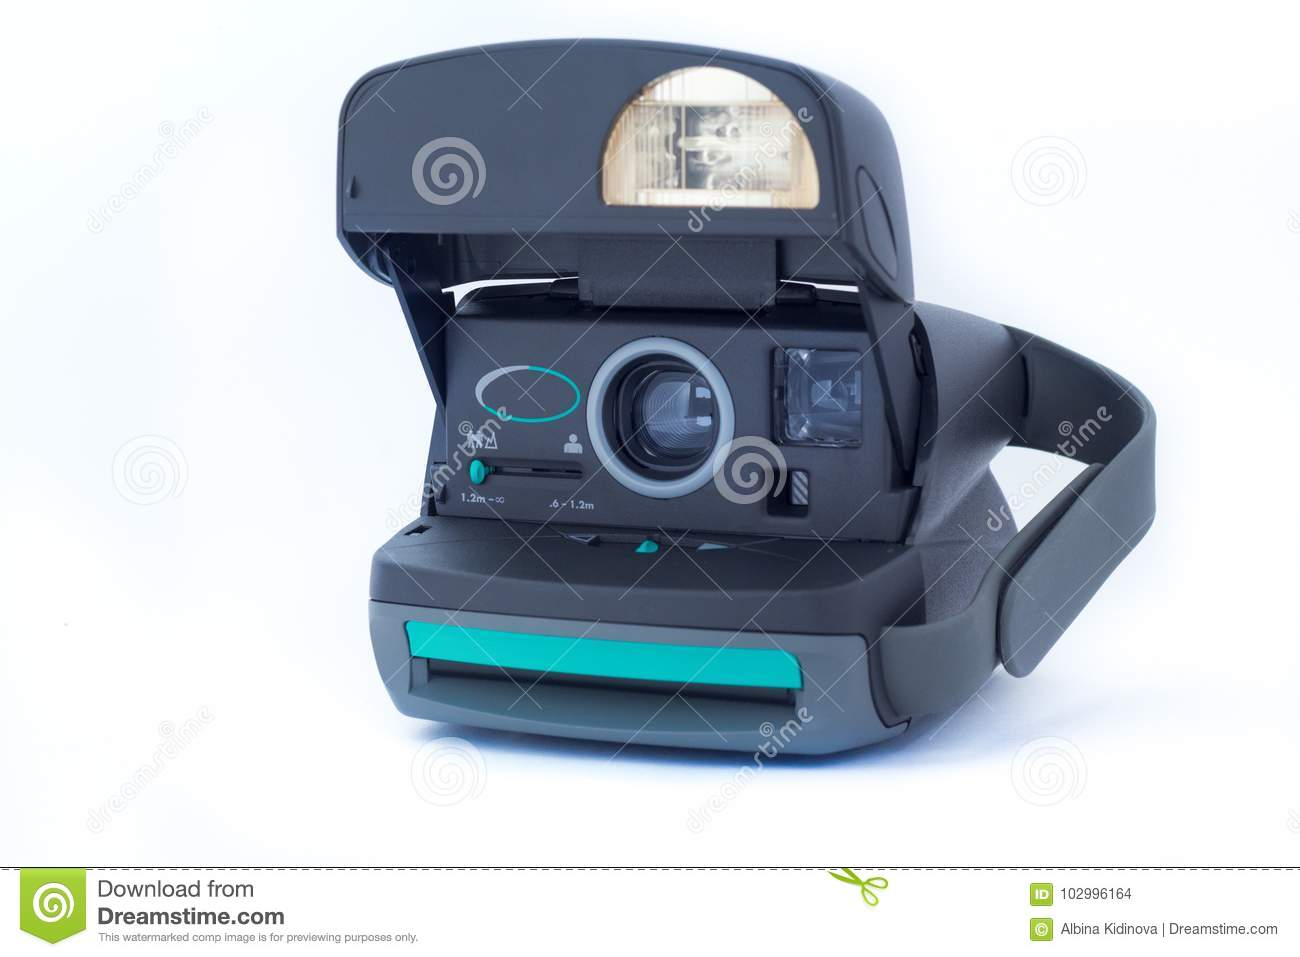 Polaroid 630 instant vintage camera on white background. Polaroid company was founded in 1937 in Cambridge